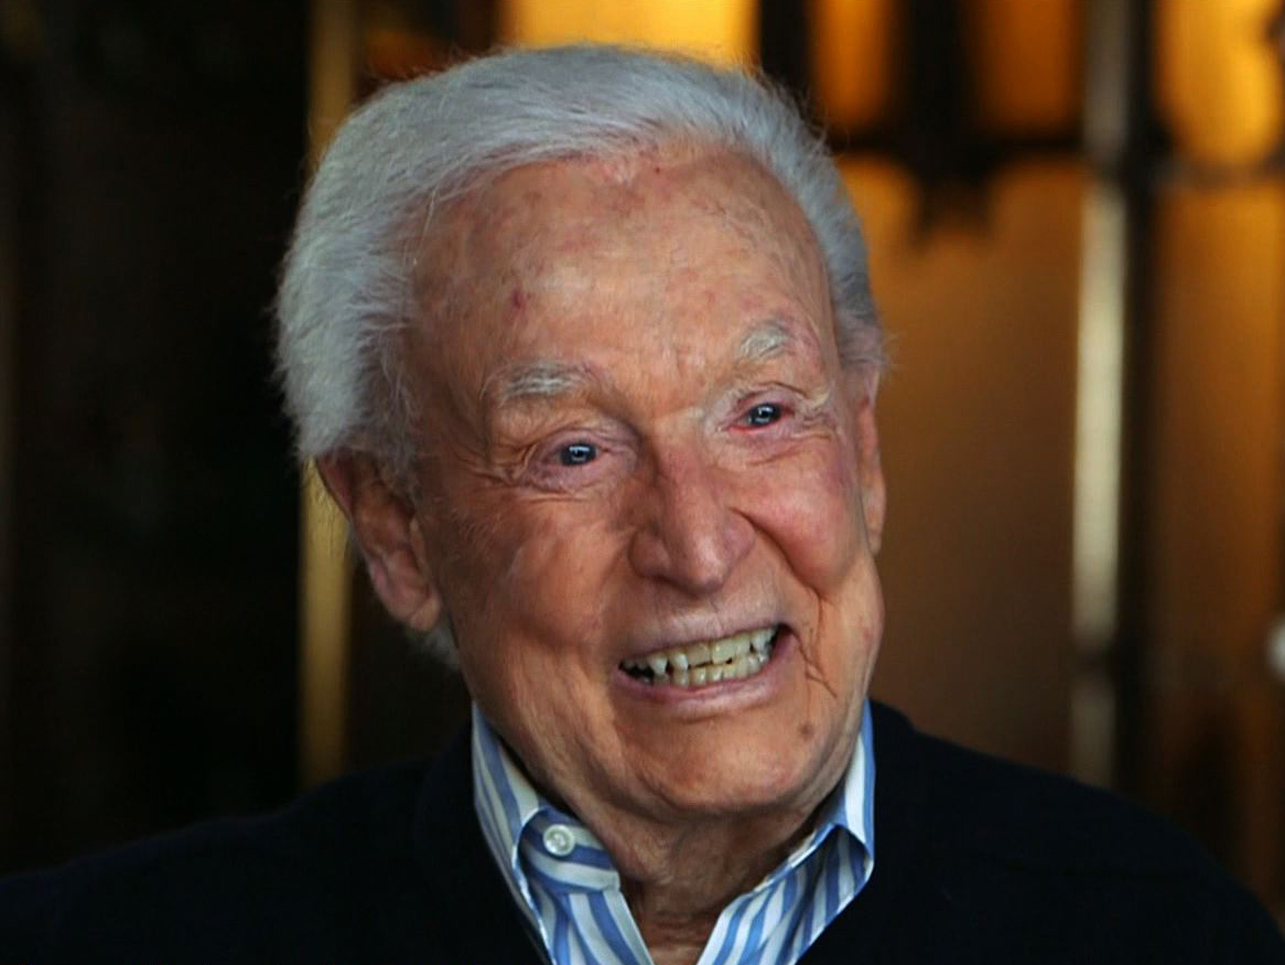 Bob Barker Returns To Quot The Price Is Right Quot For Birthday